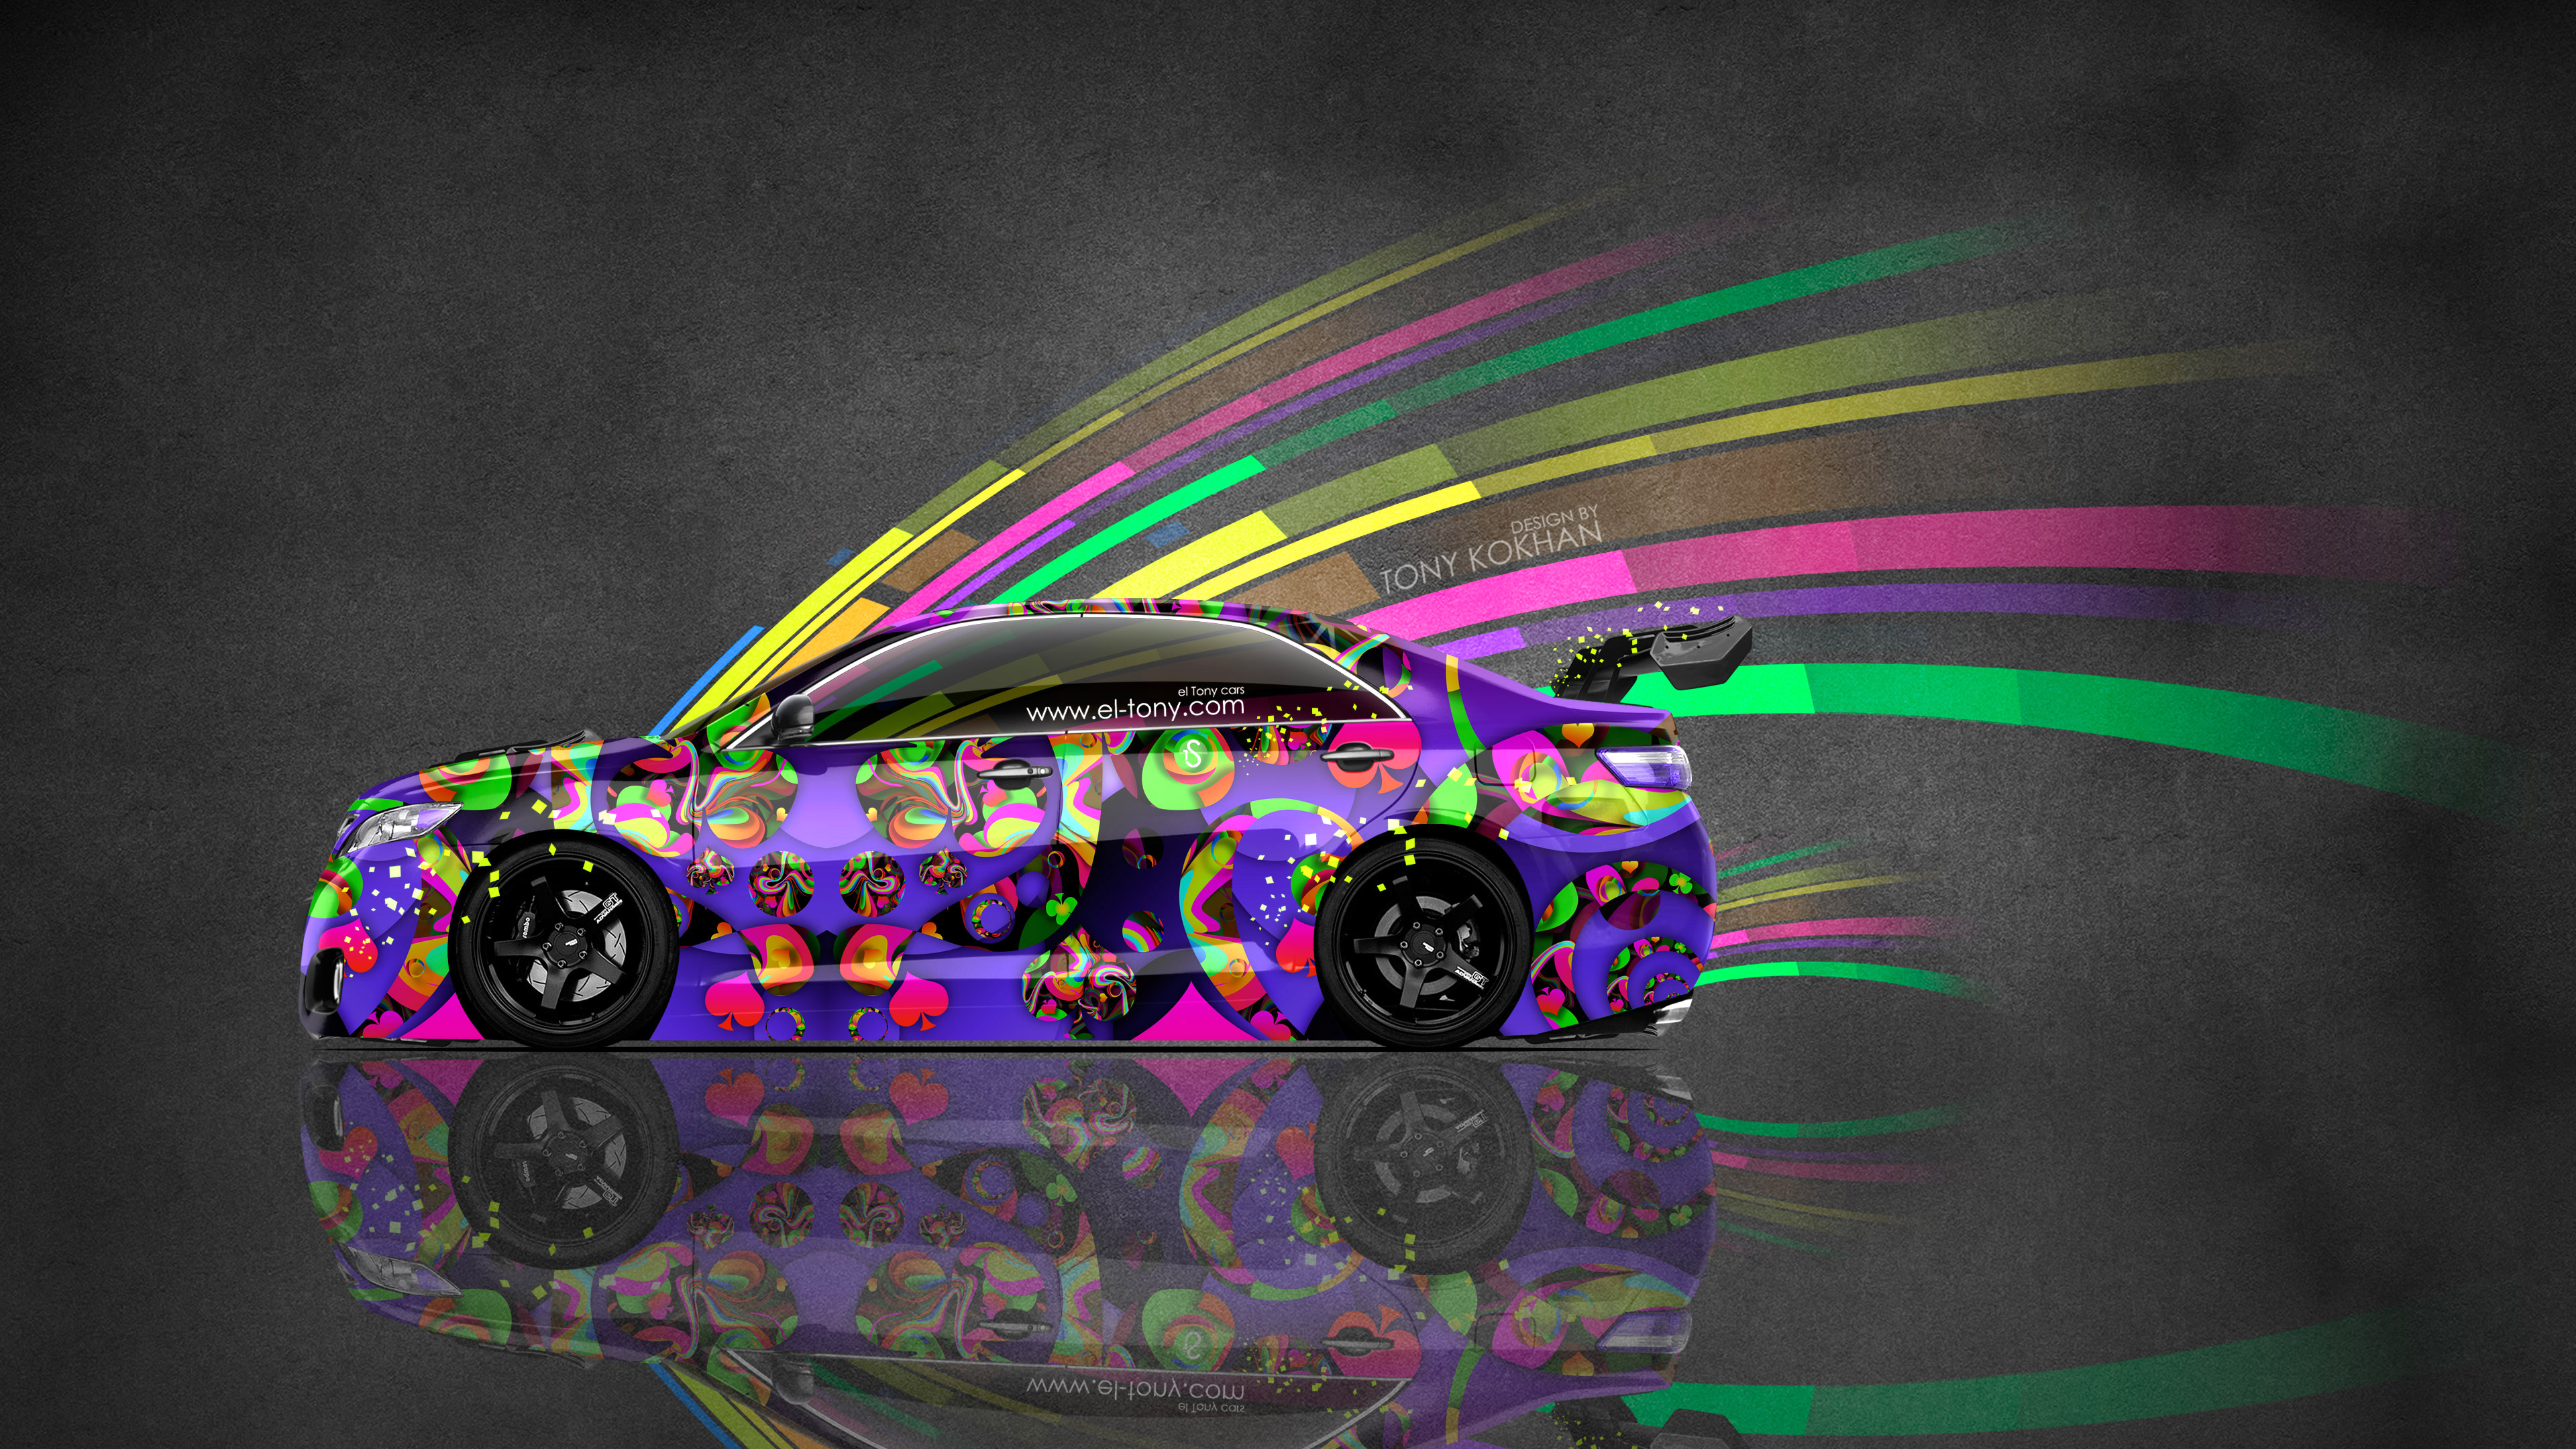 4k toyota camry jdm tuning side super abstract aerography